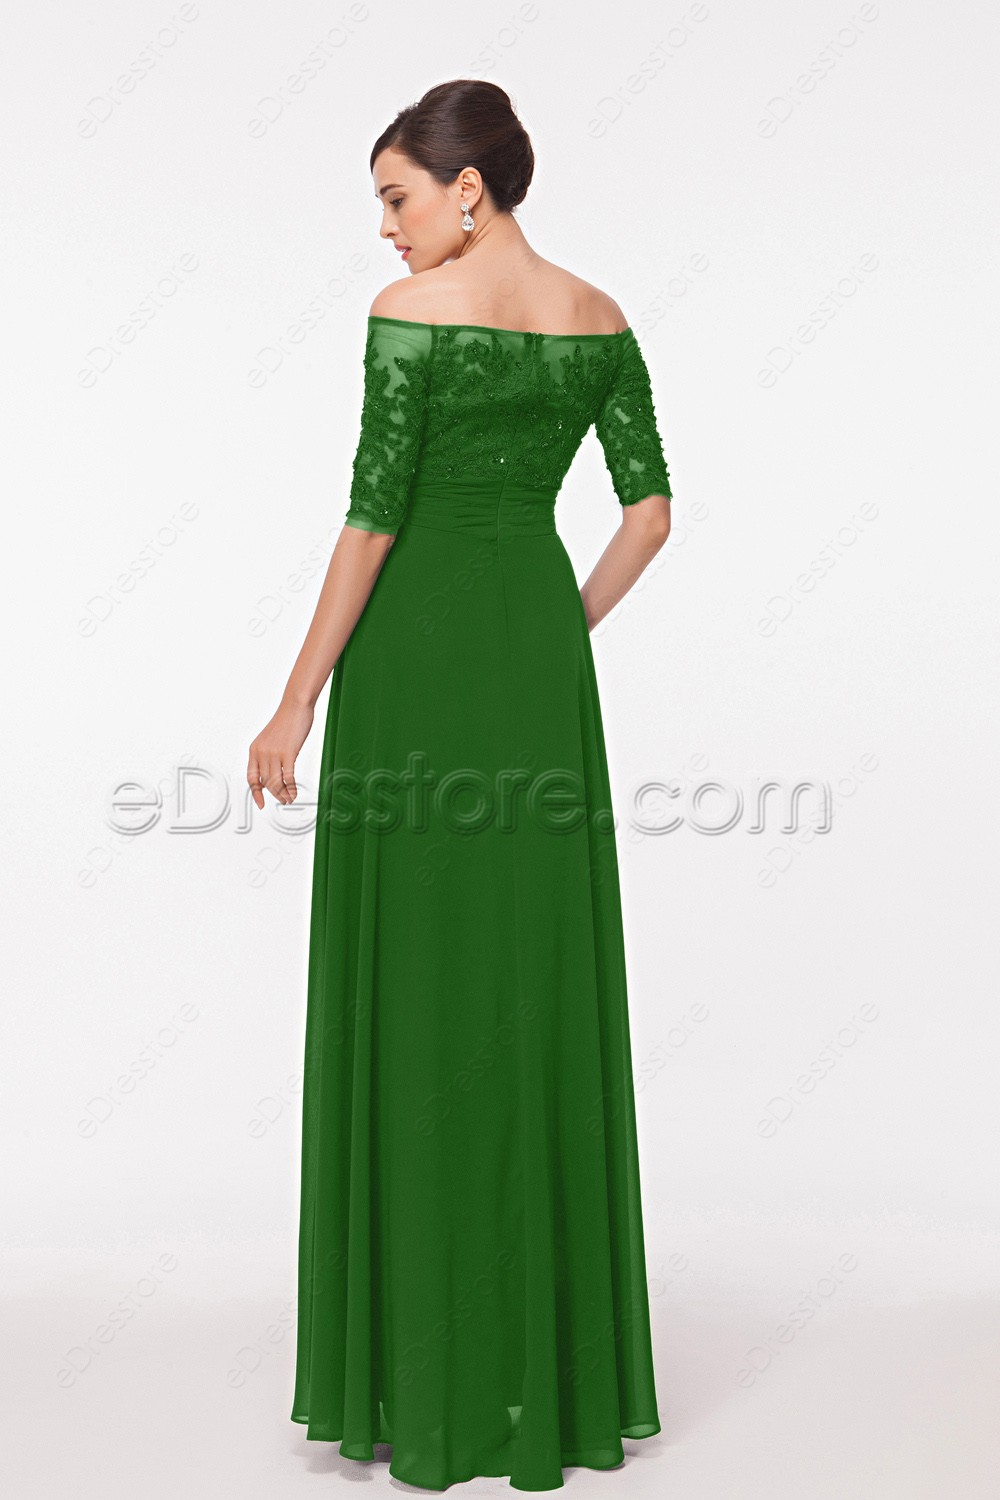 Off The Shoulder Modest Emerald Green Formal Dresses With